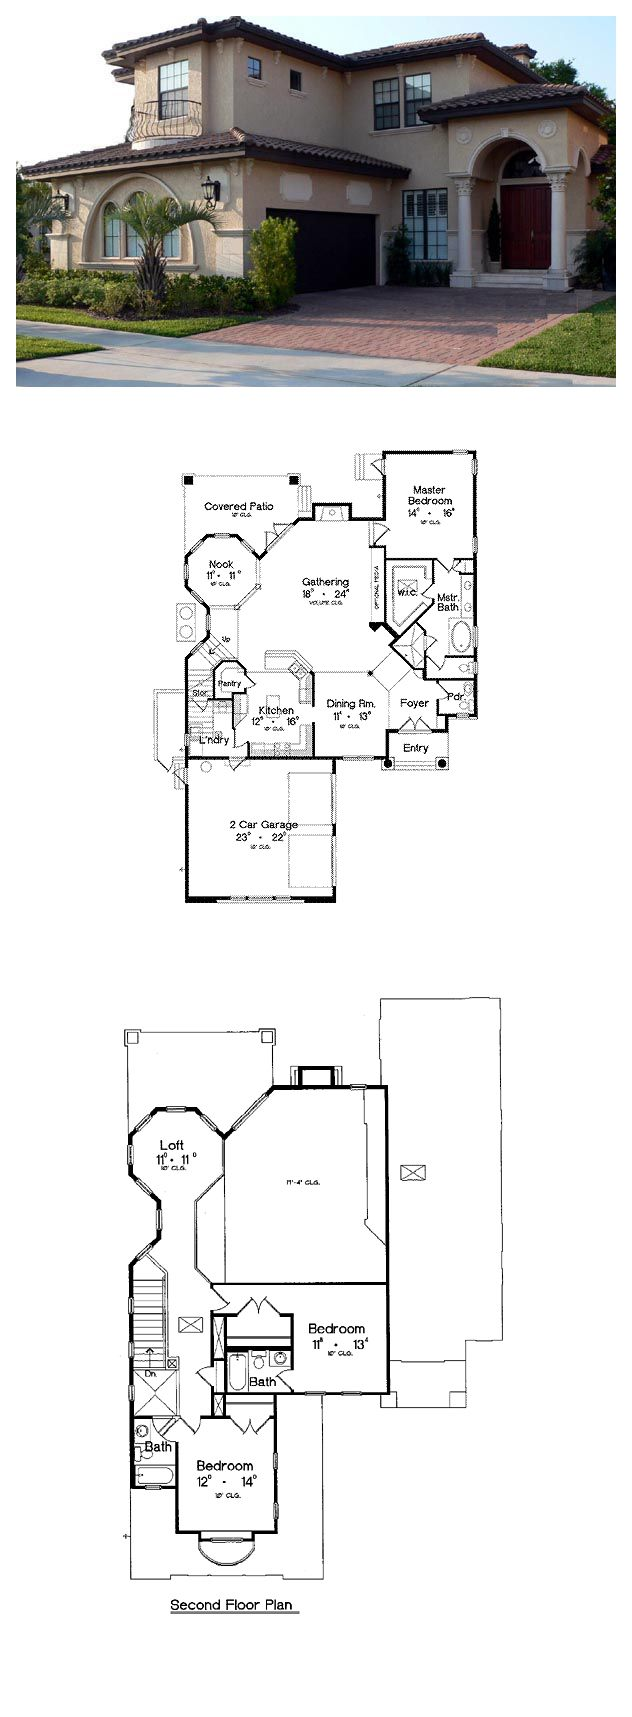 Small italian cottage house plans for Italian house designs plans